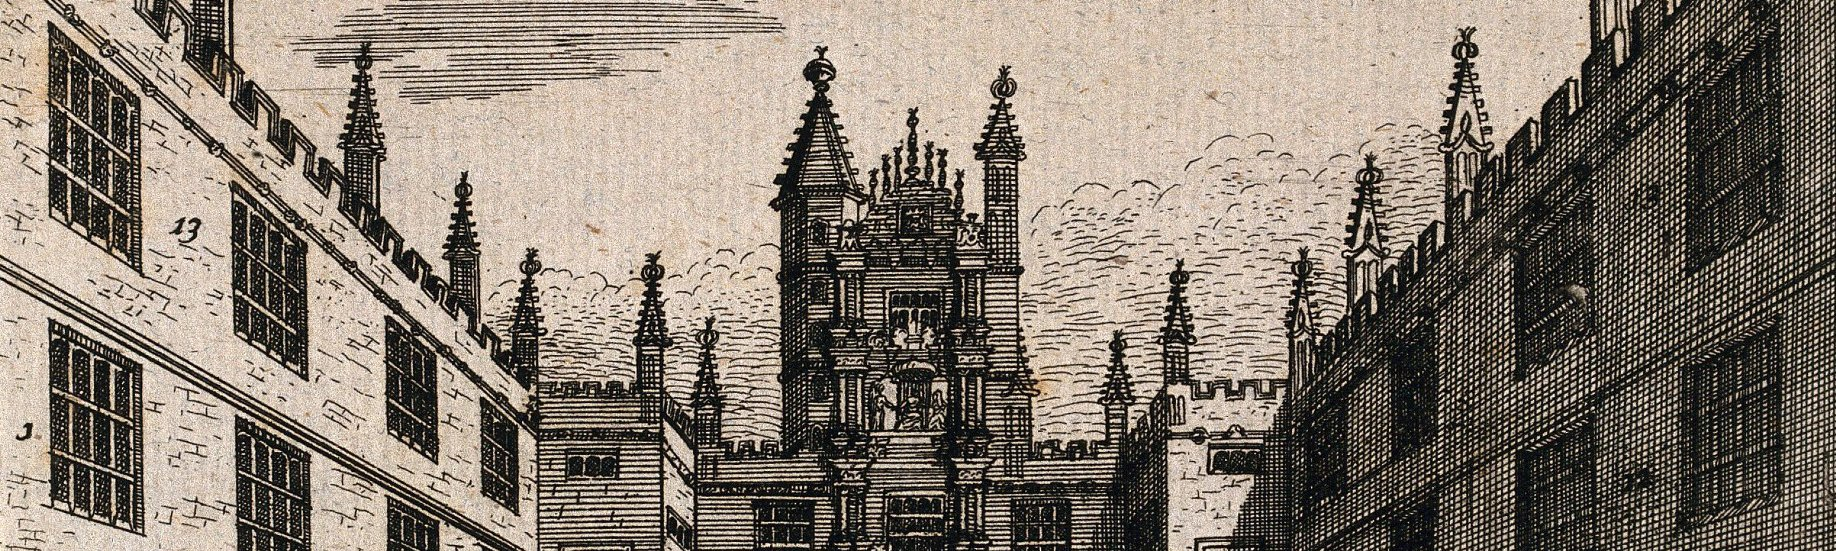 History line engraving of University College, Oxford